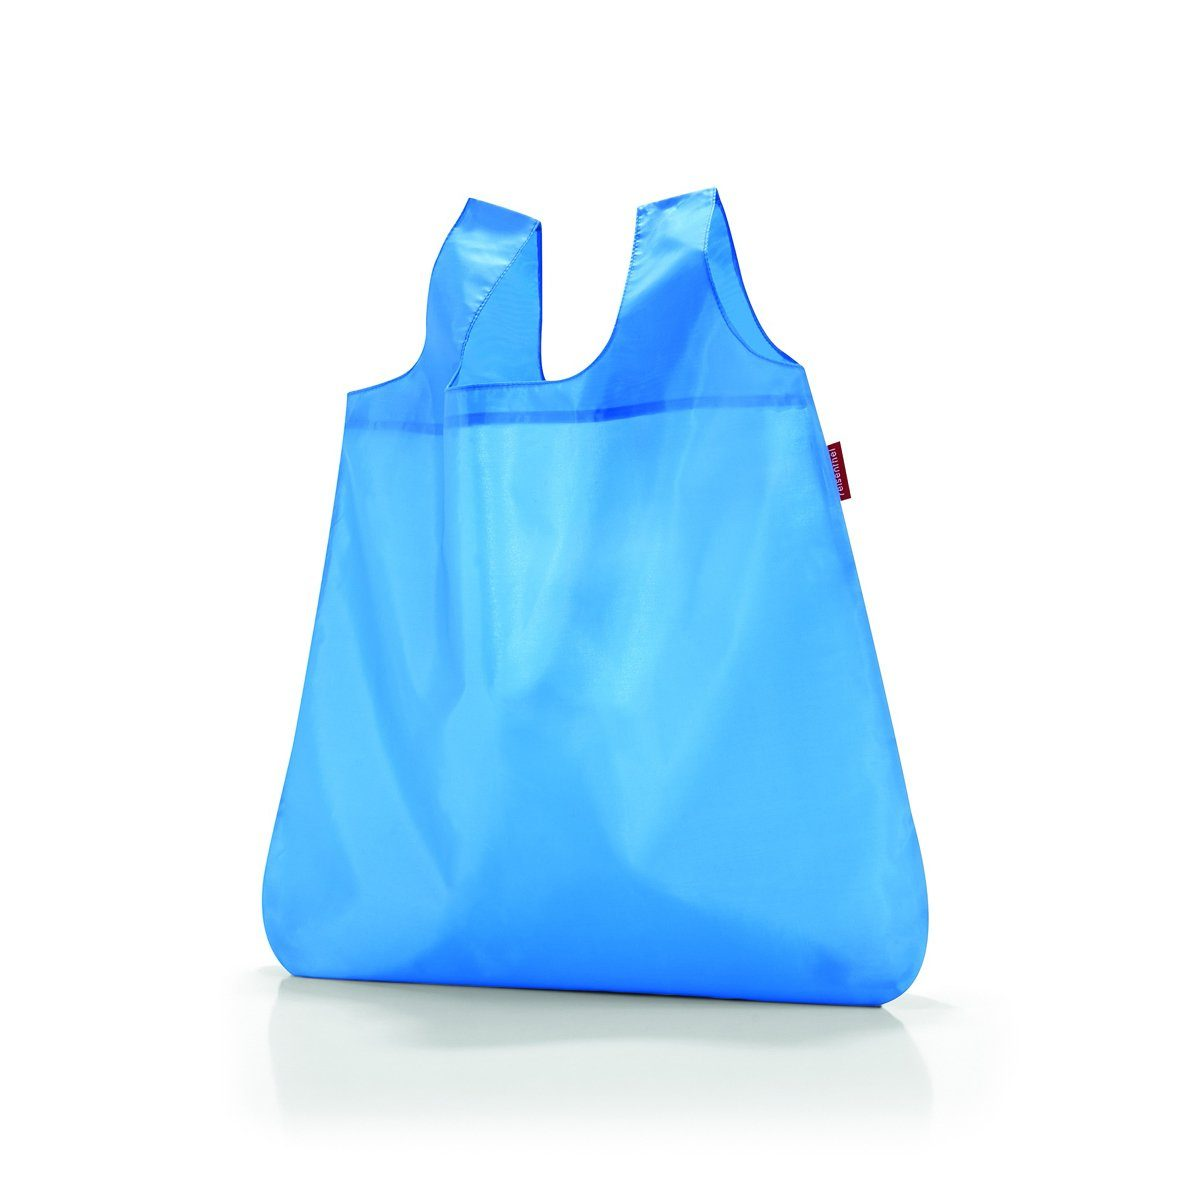 REISENTHEL® Reisenthel MINI MAXI SHOPPER old style regatta blau